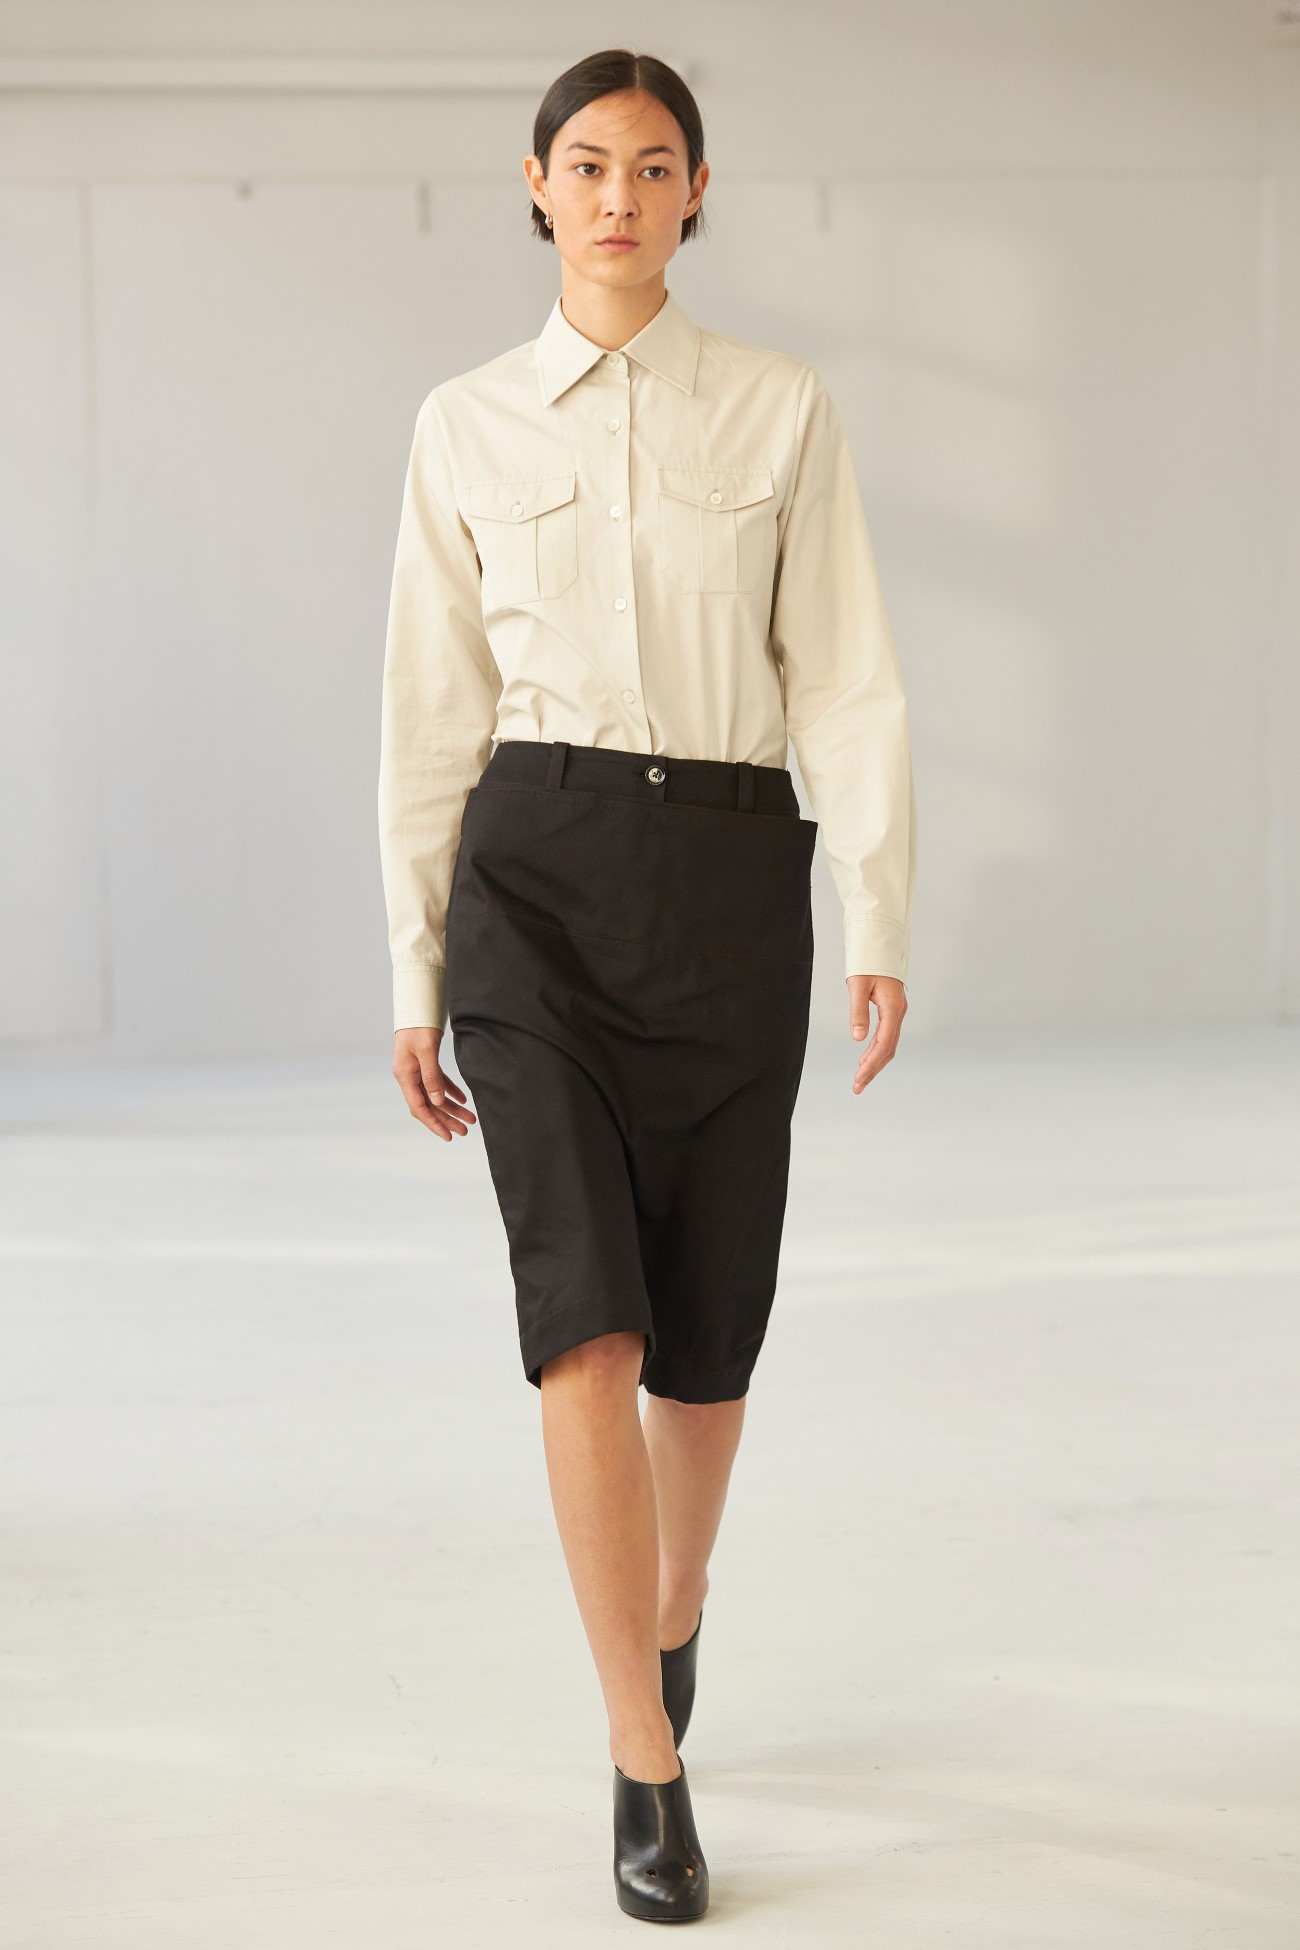 Lemaire - Spring Summer 2021 - Paris Fashion Week Men's